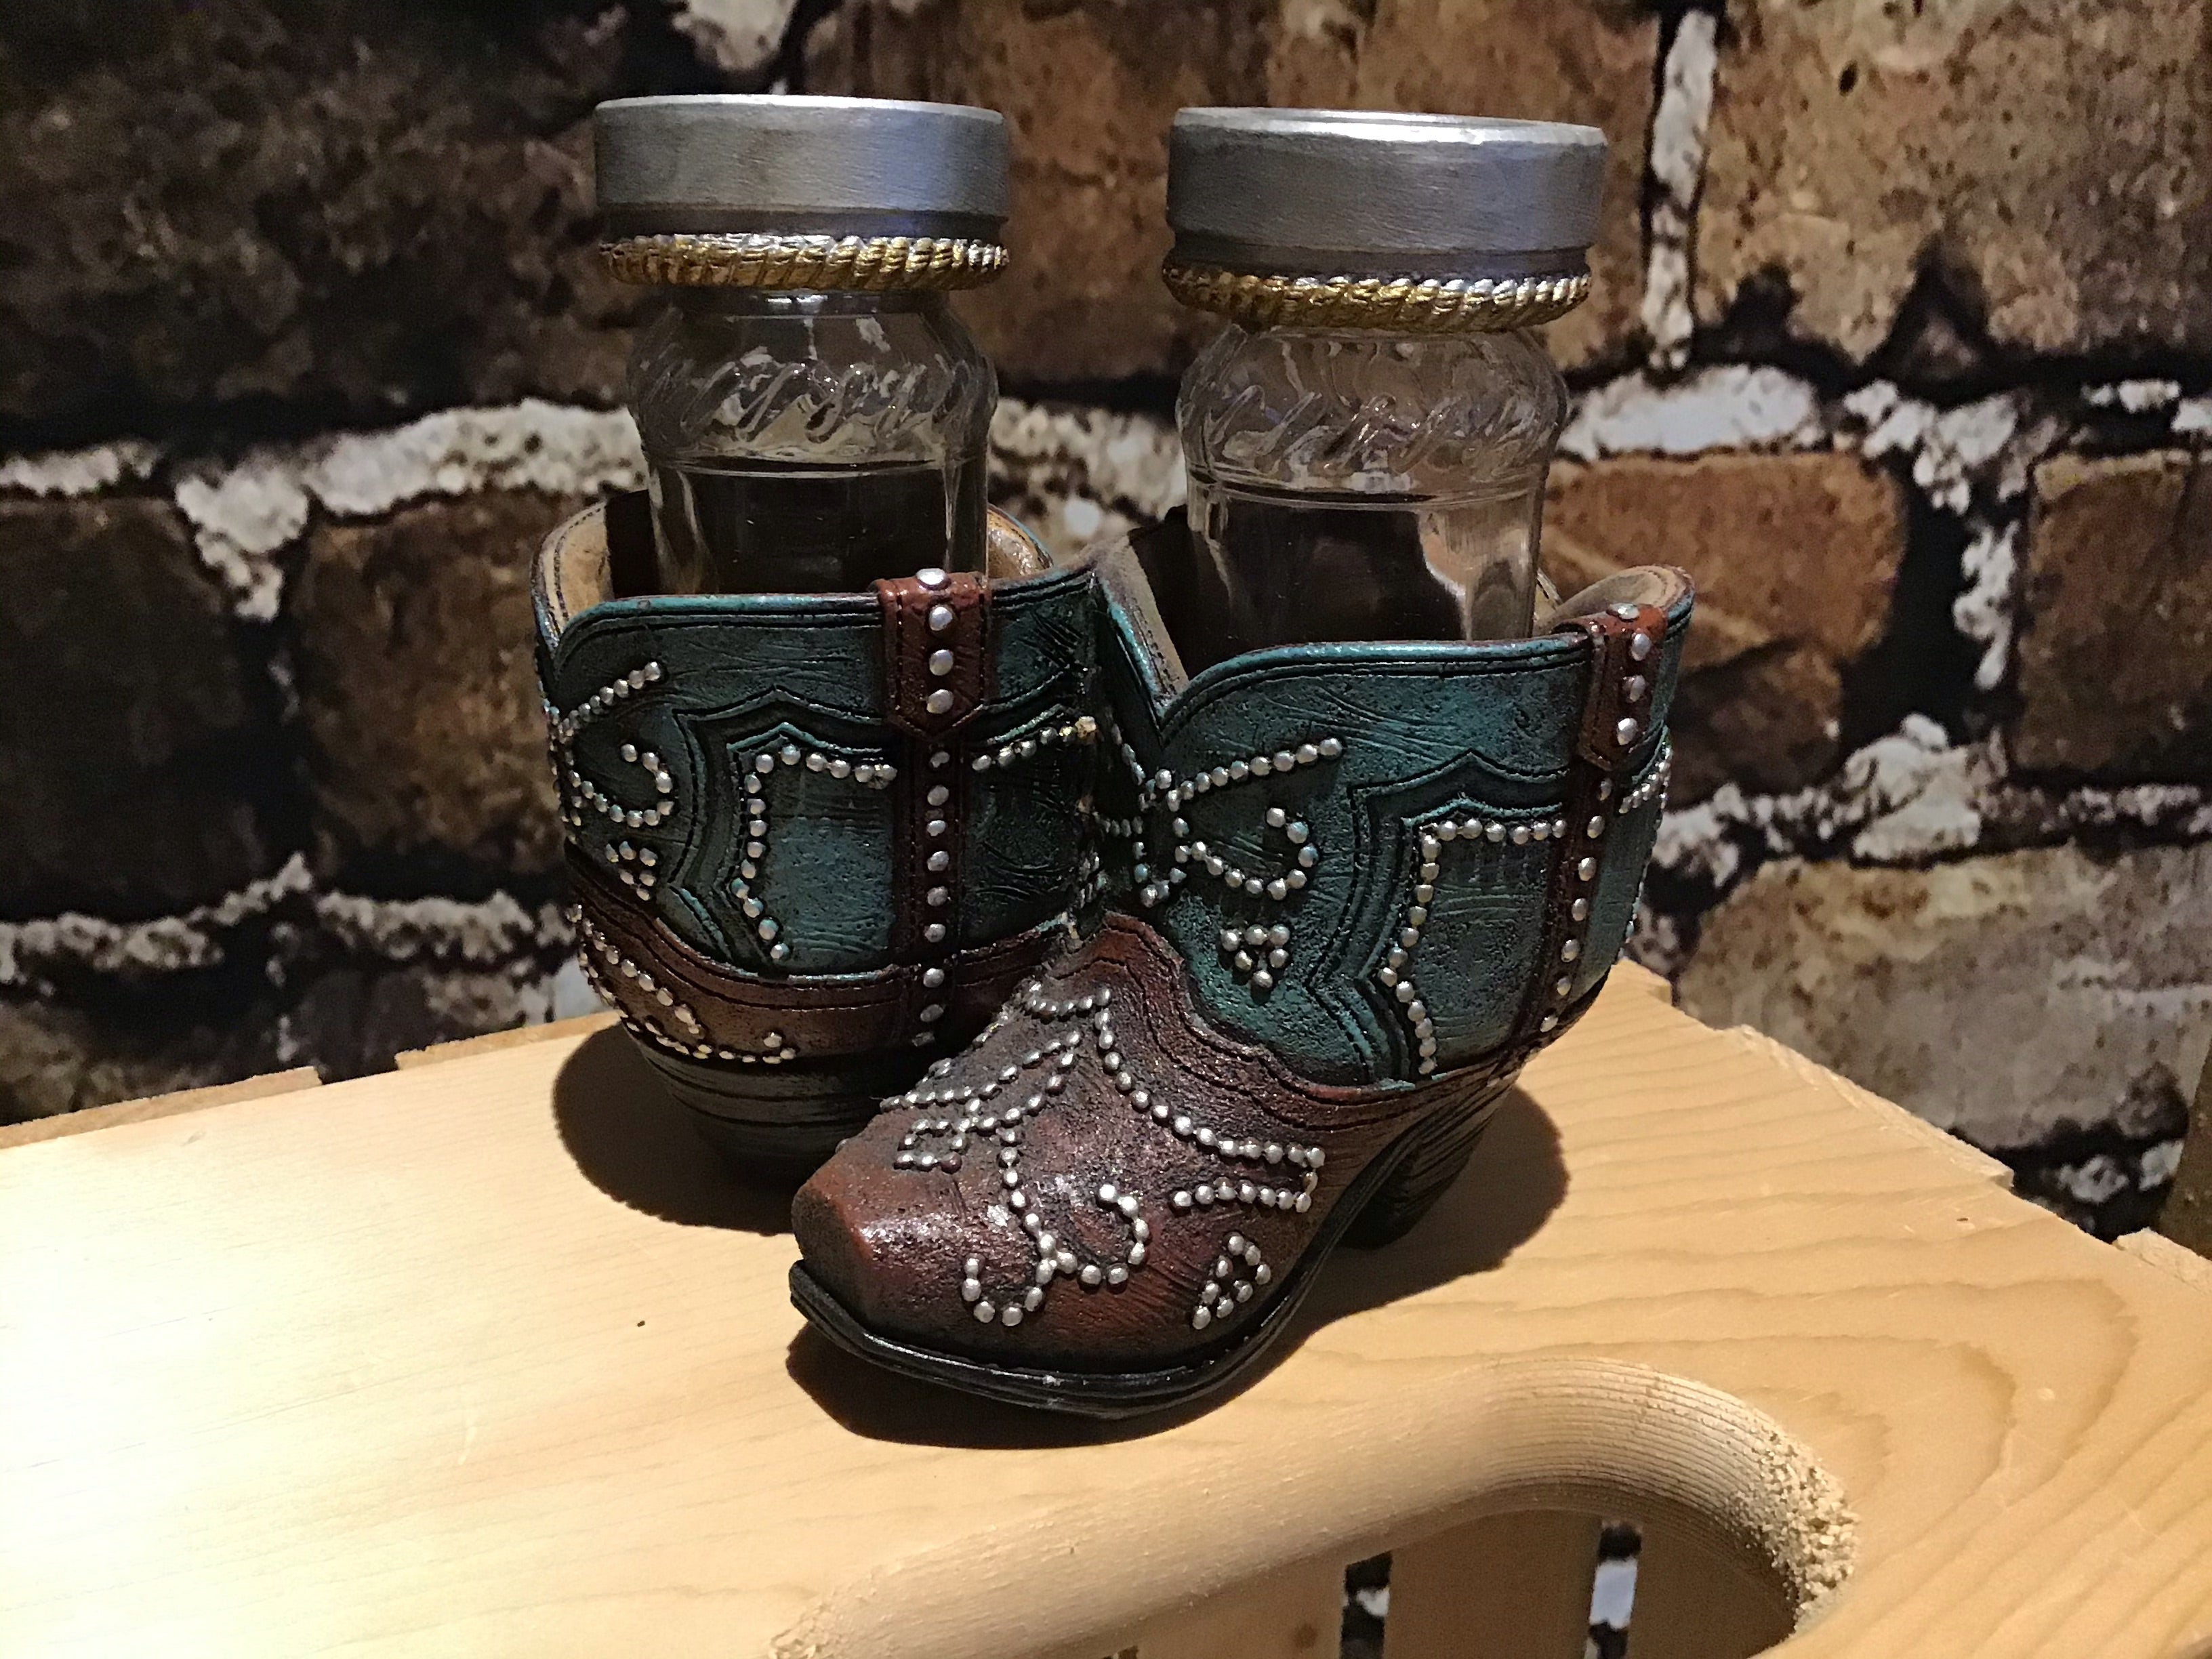 Western Cowboy Boot  with Teal Blue Salt & Pepper Shaker